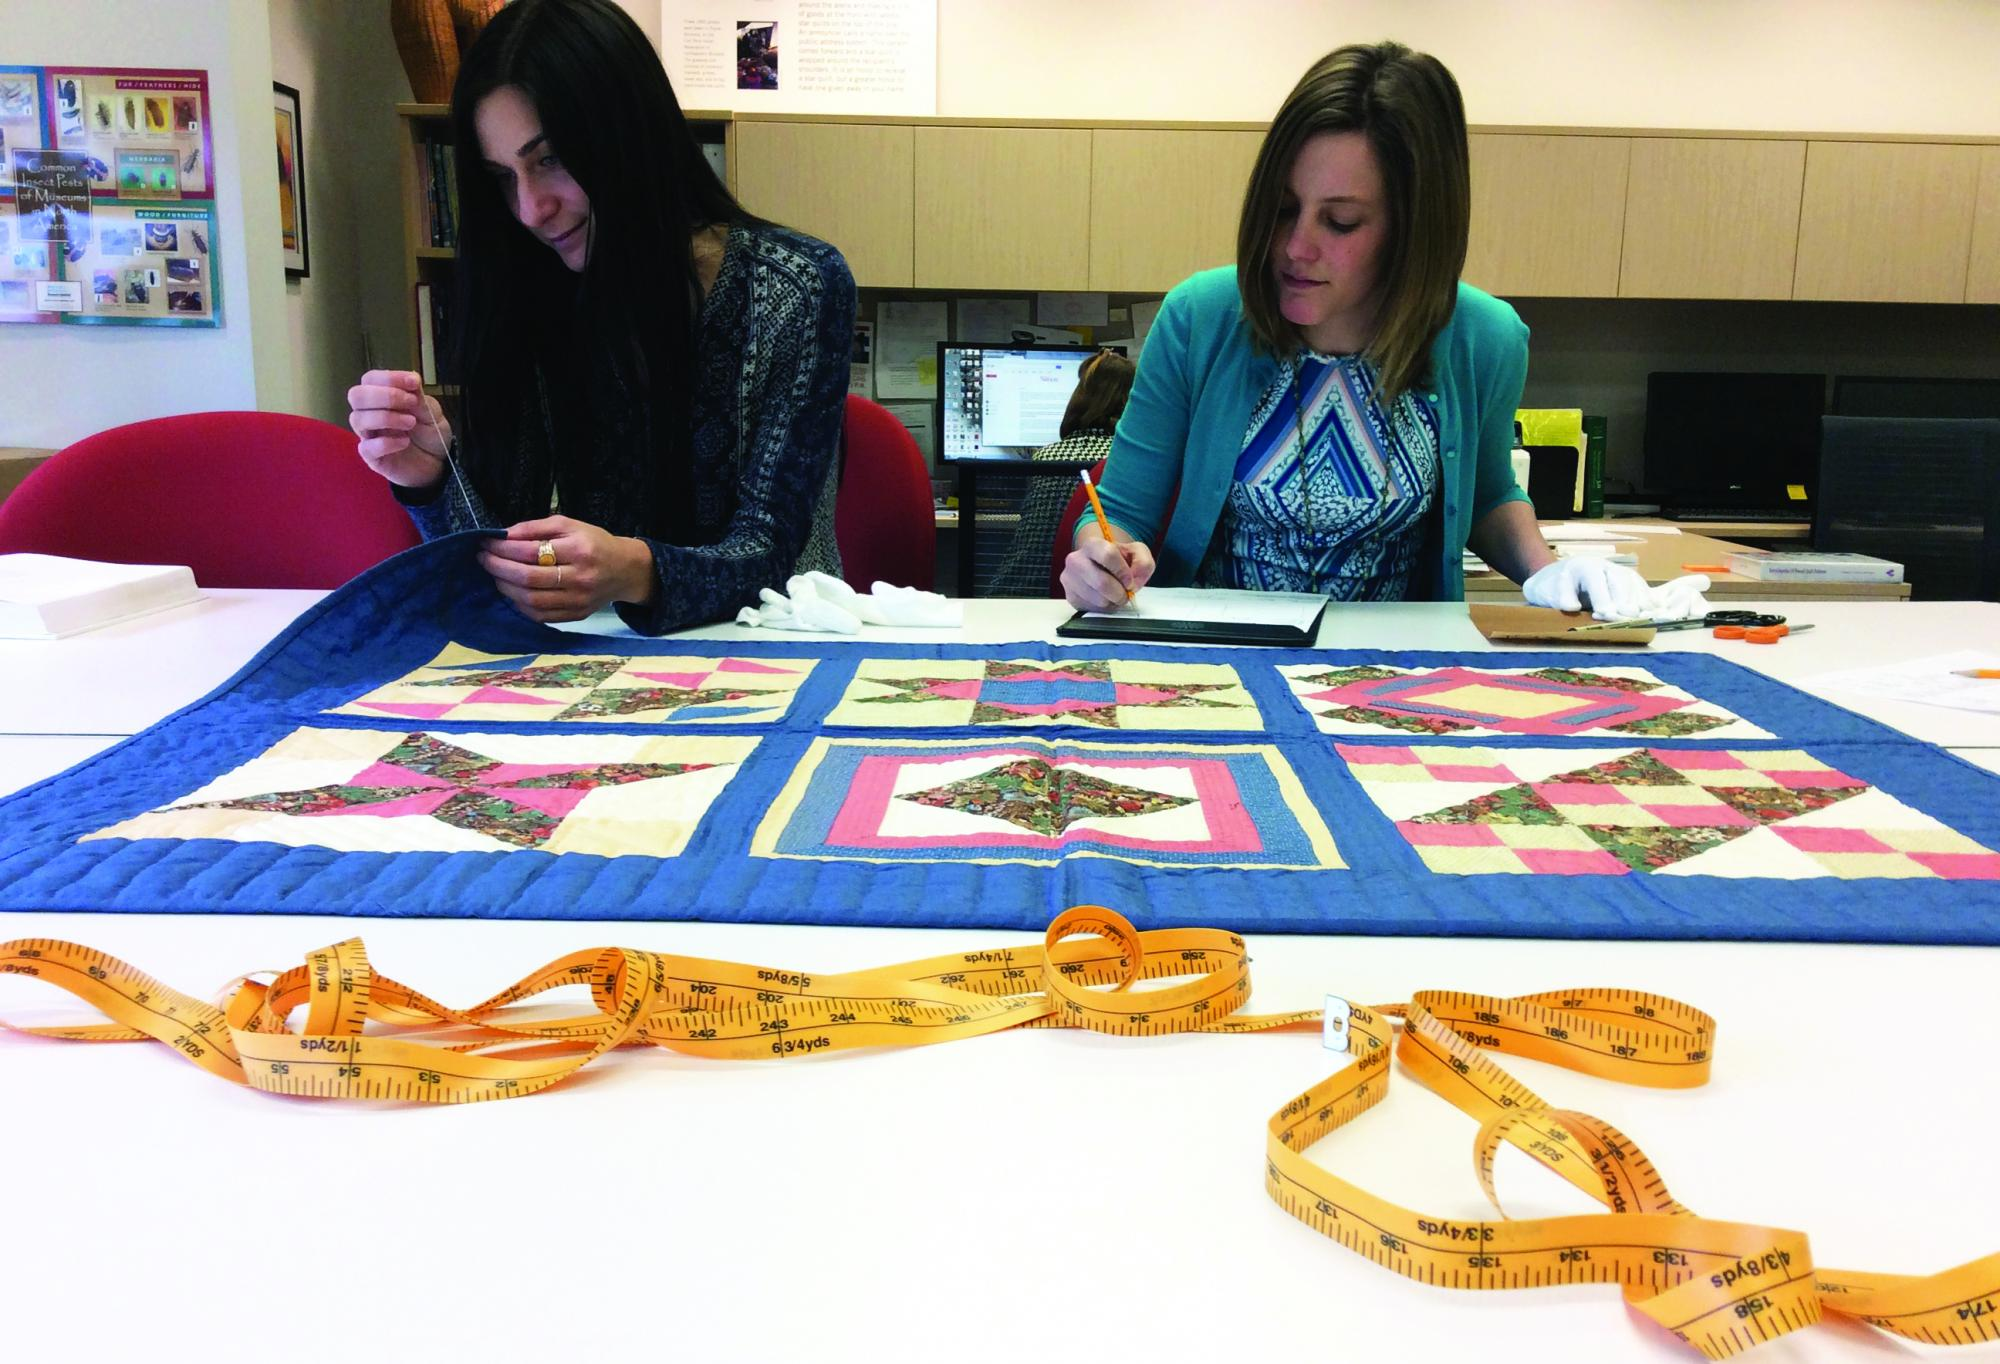 Ladies working on a quilt